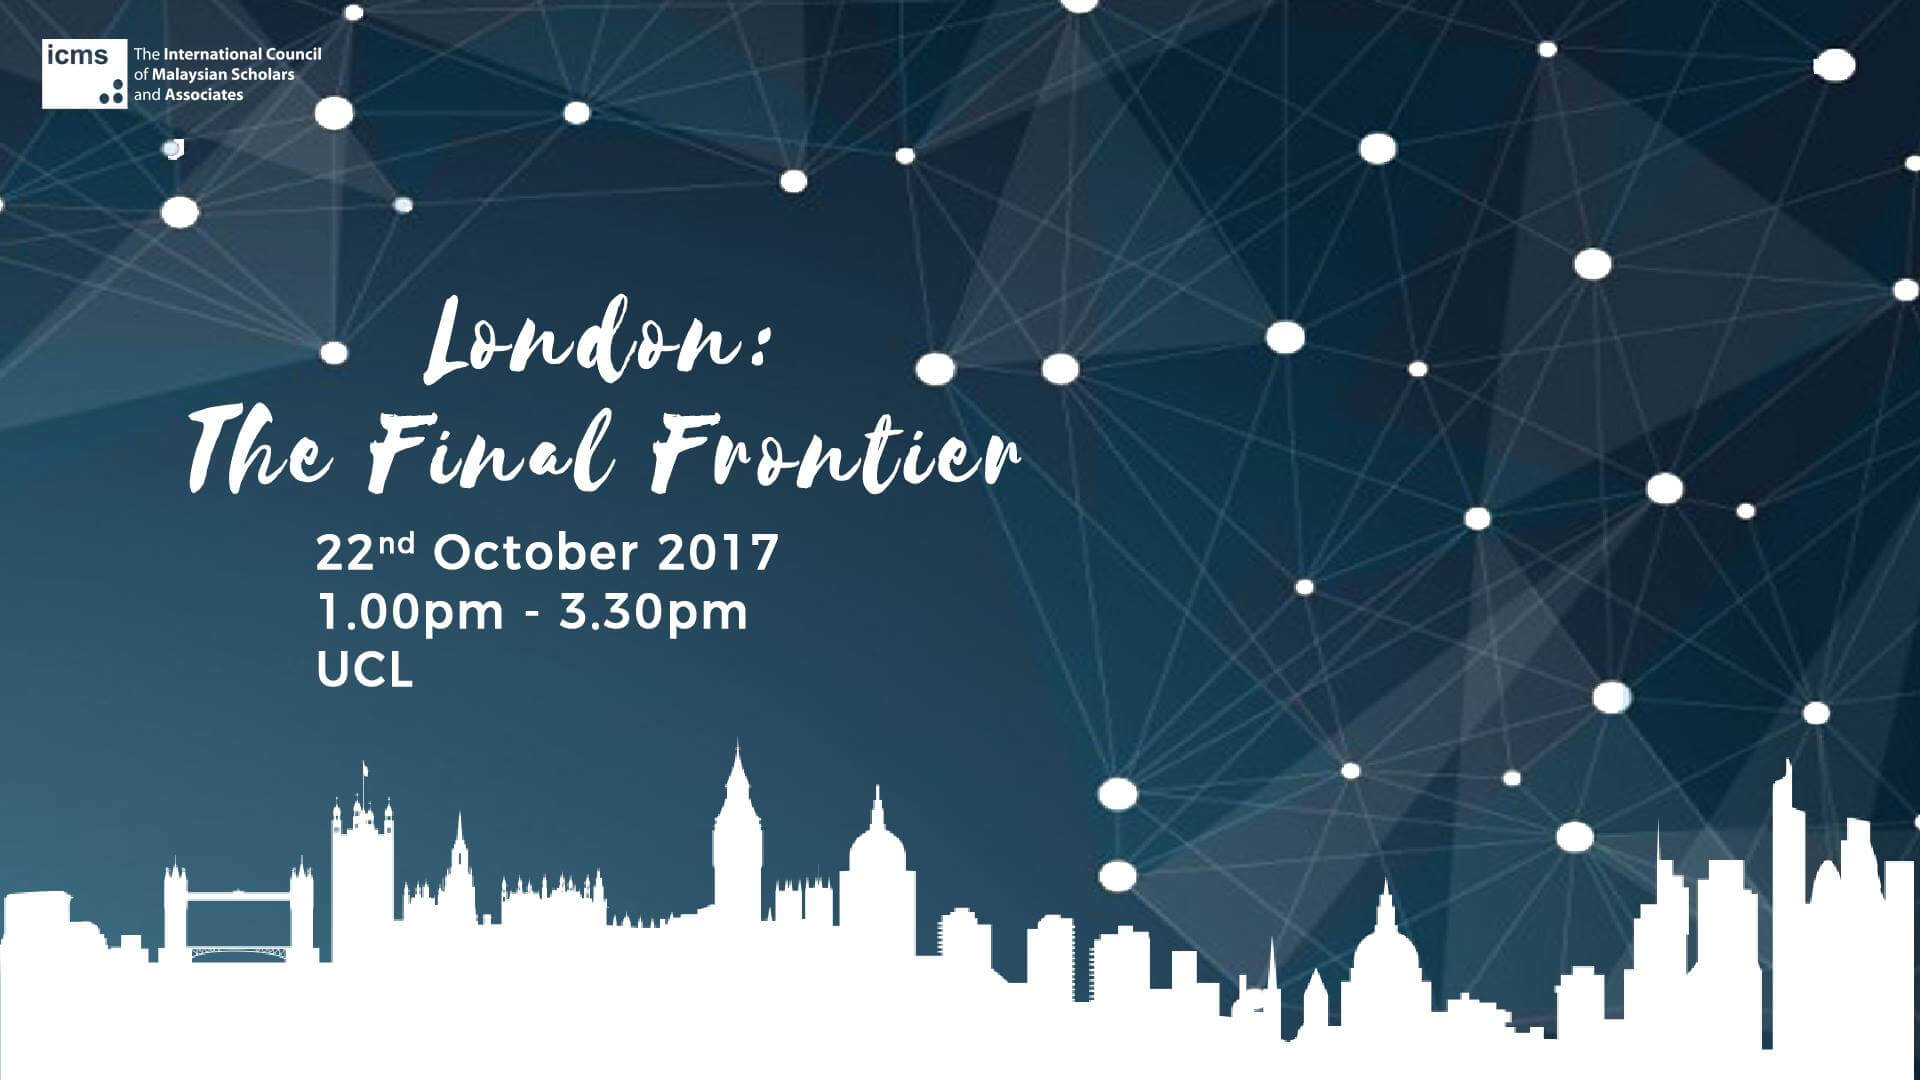 United Kingdom Chapter: London - The Final Frontier (22nd October 2017)